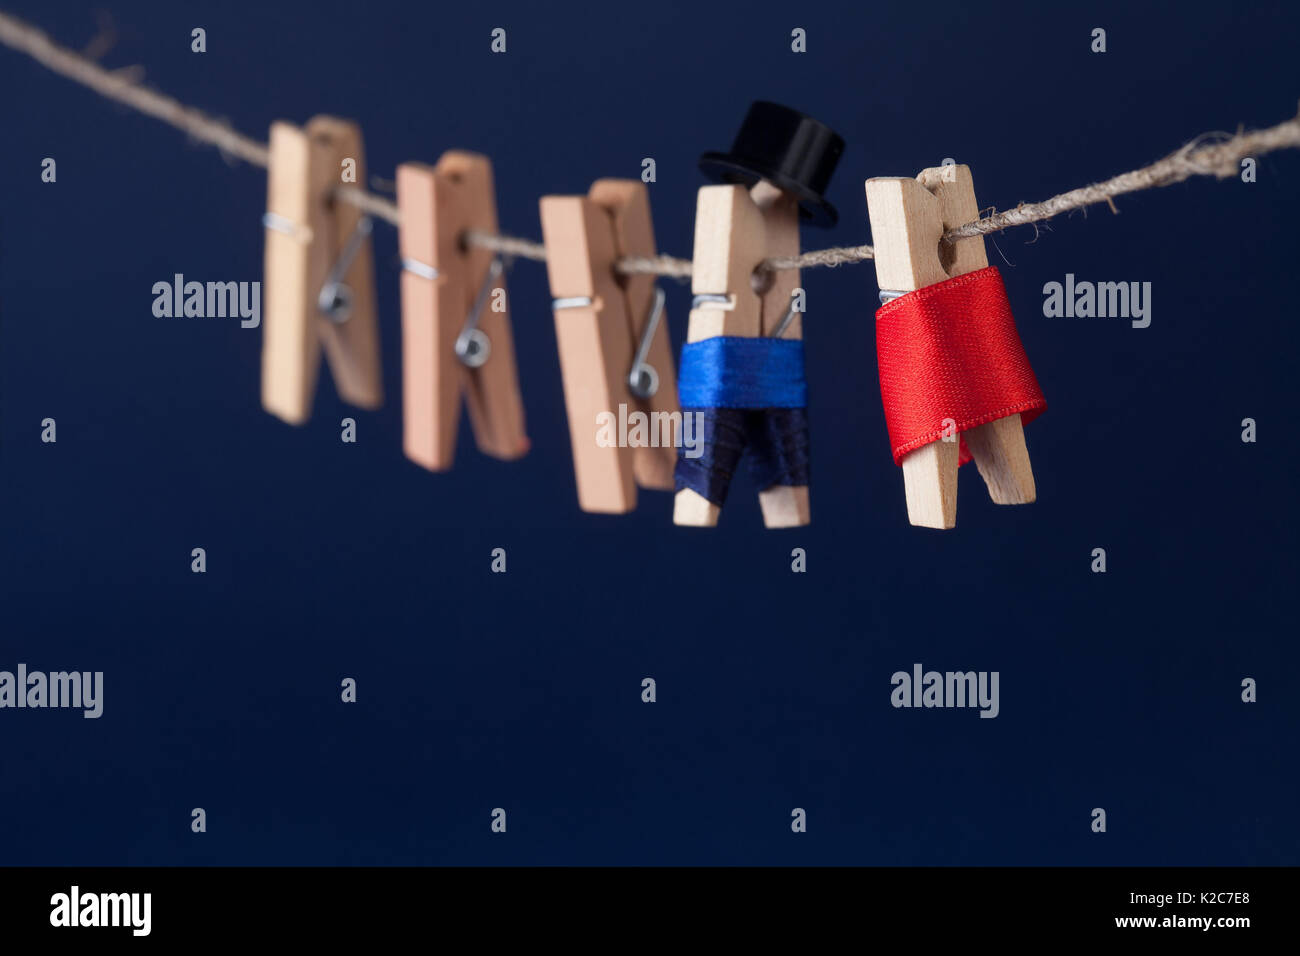 Creative design clothespin characters man in suit, woman red dress hanging on rope. concept with clothesline and dark blue background. Macro view, shallow depth of field - Stock Image